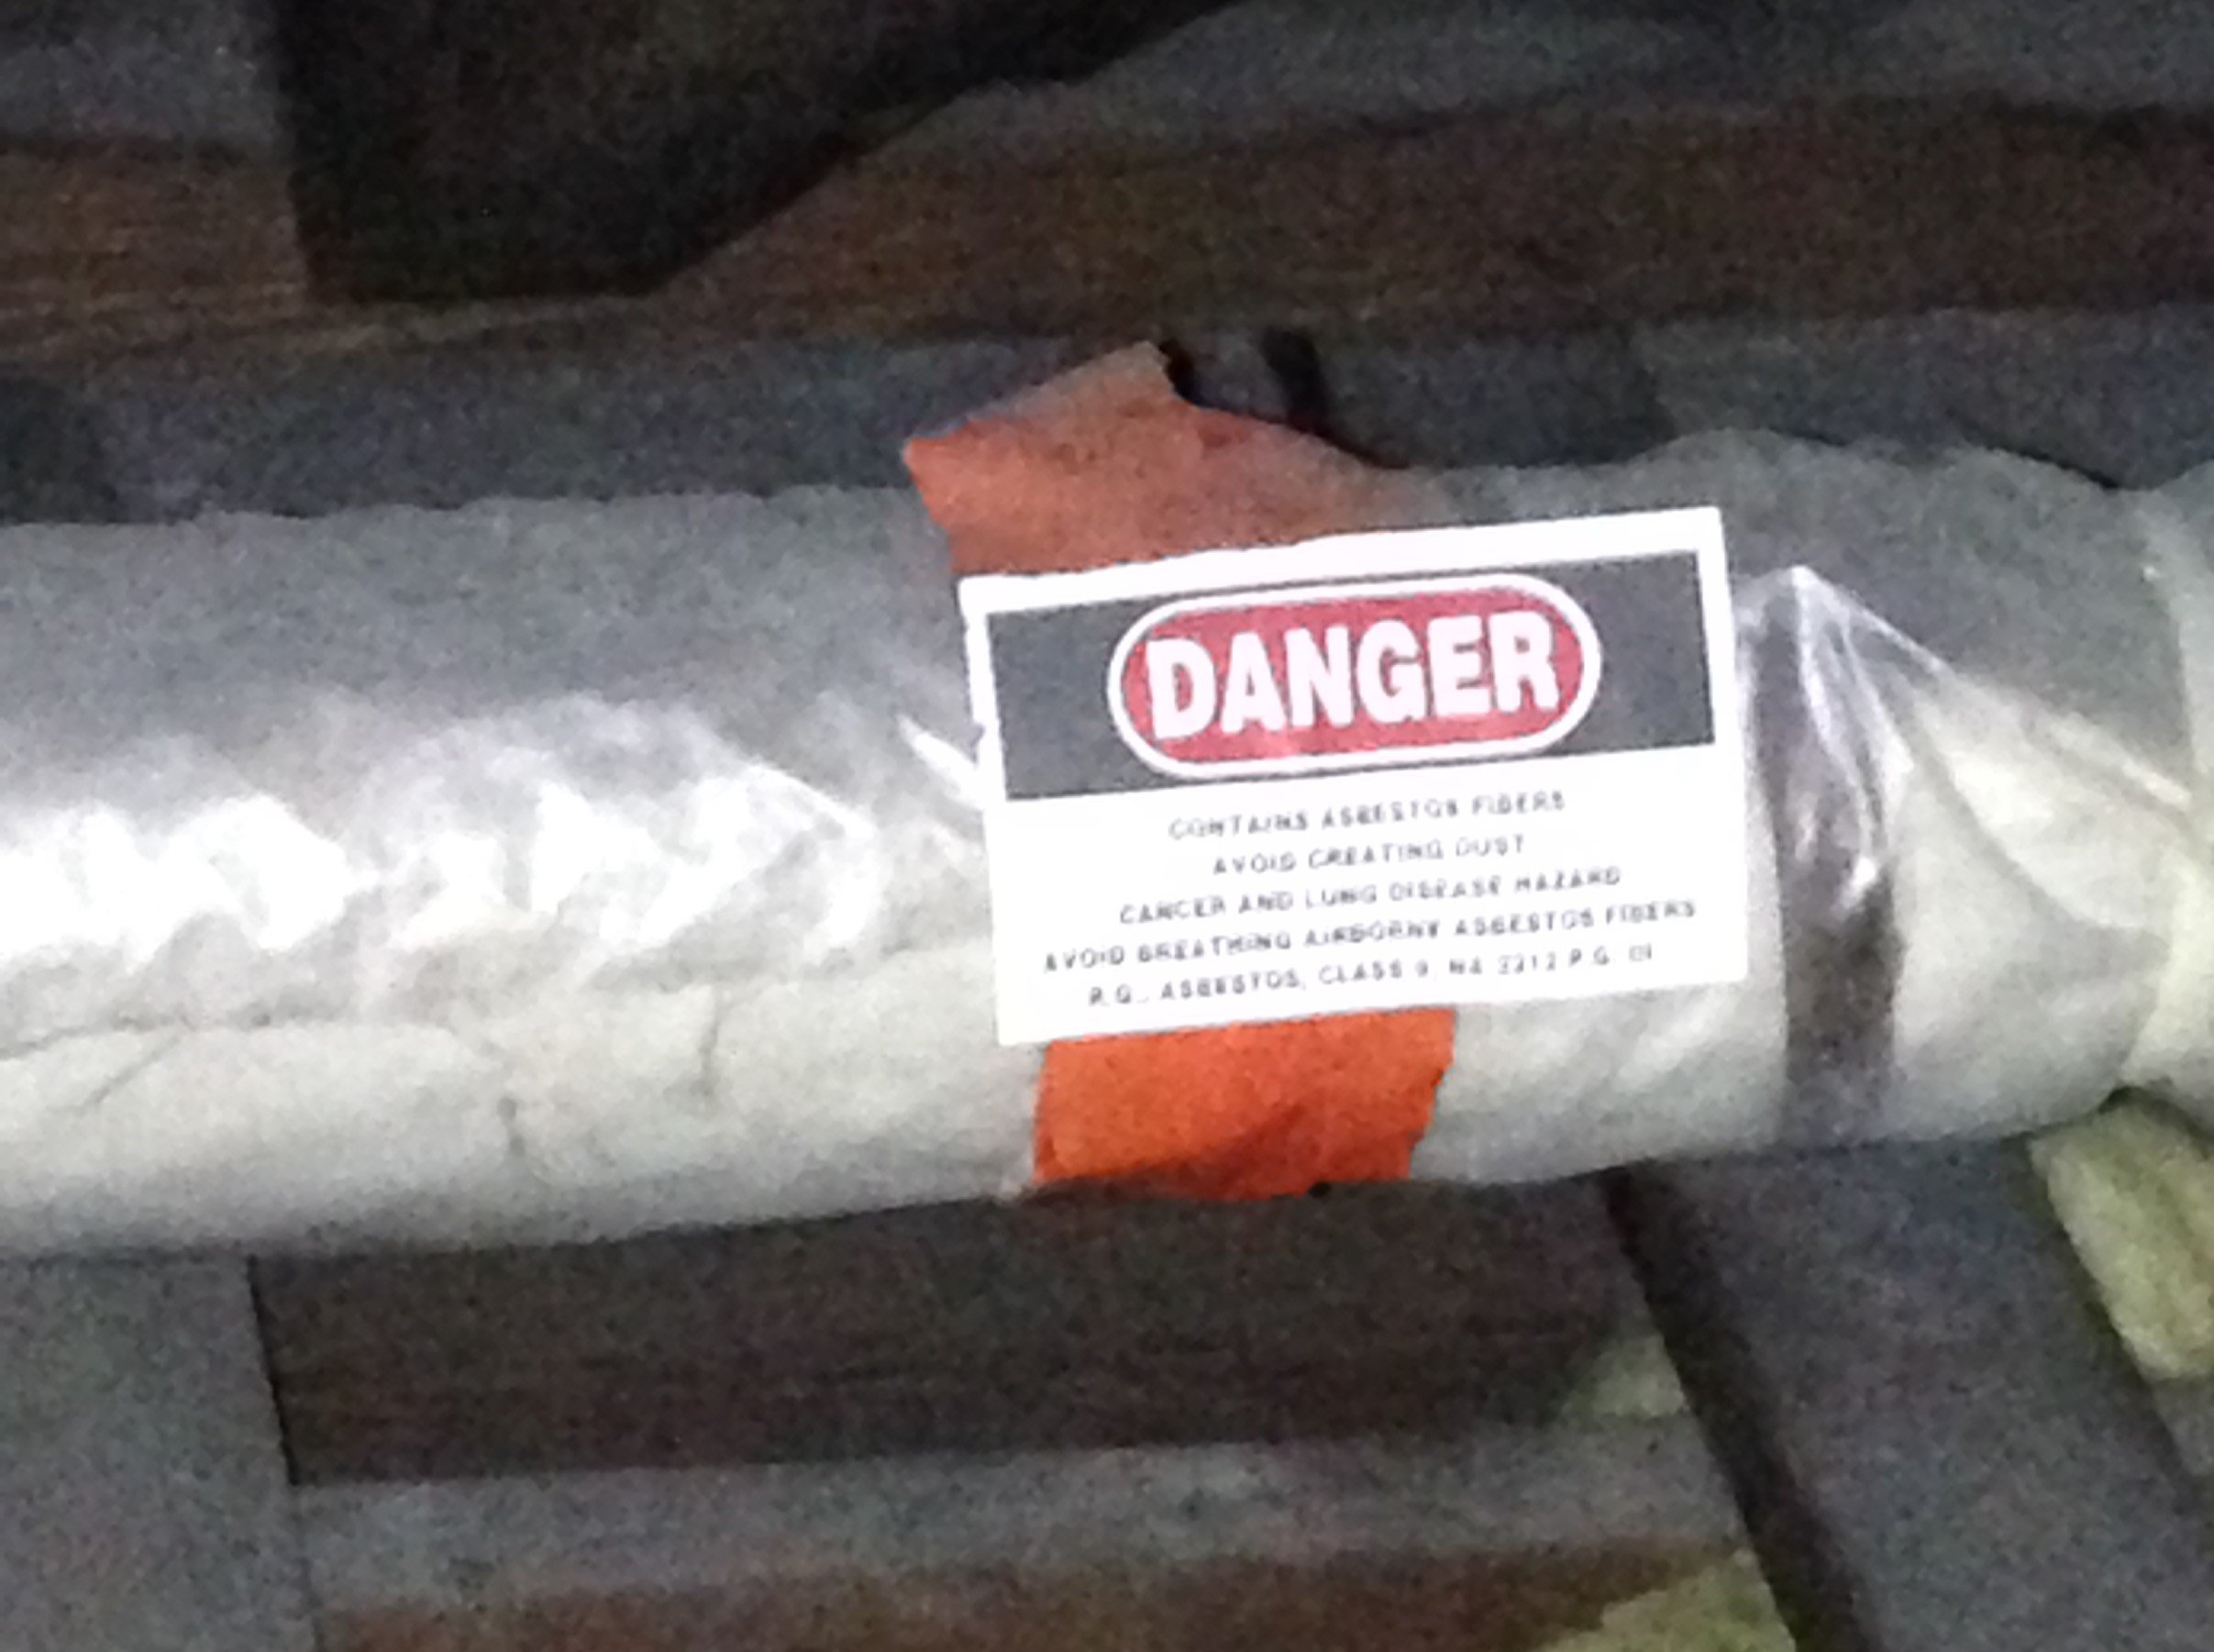 Pipe insulated with Asbestos-Containing Material